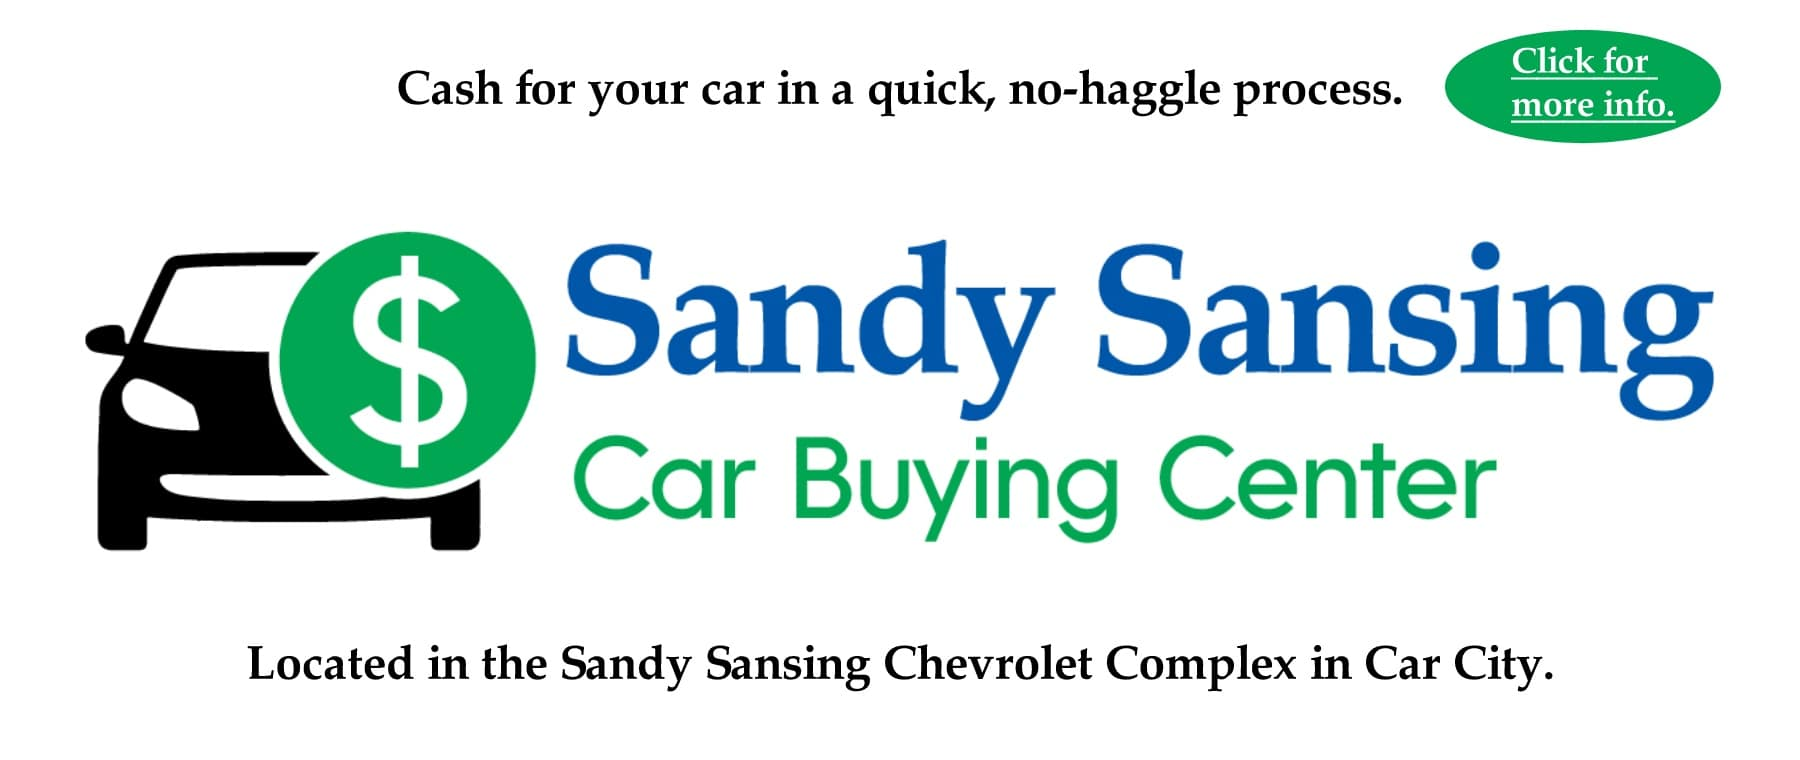 Sandy Sansing Buying Center Pensacola FL Sell Your Car